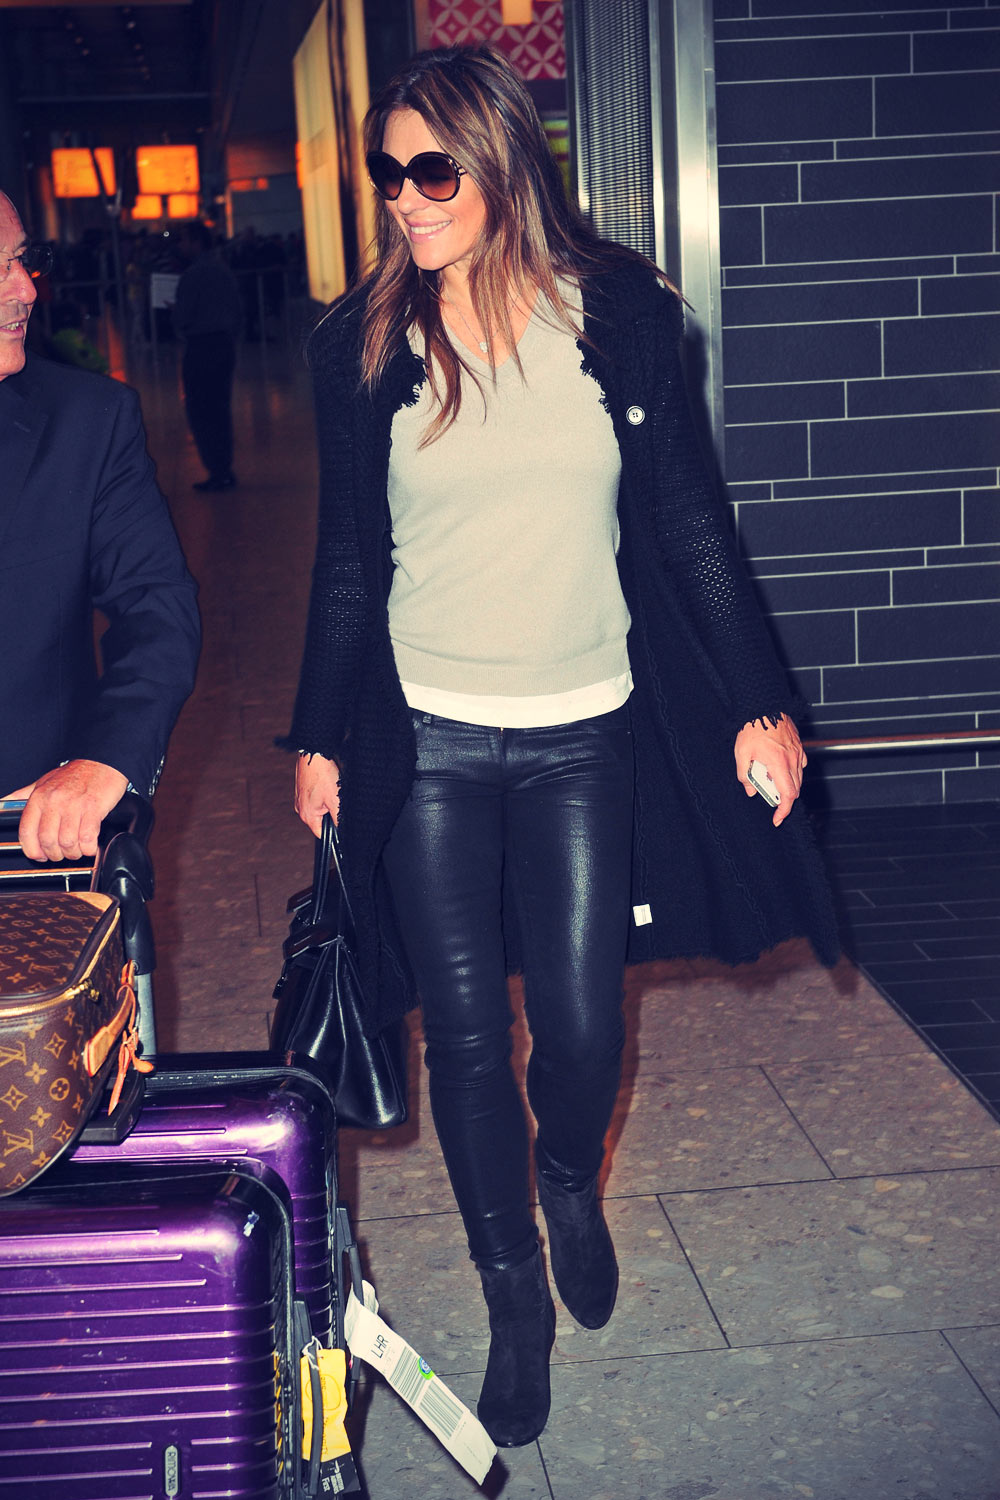 Elizabeth Hurley arrives back in London from NYC